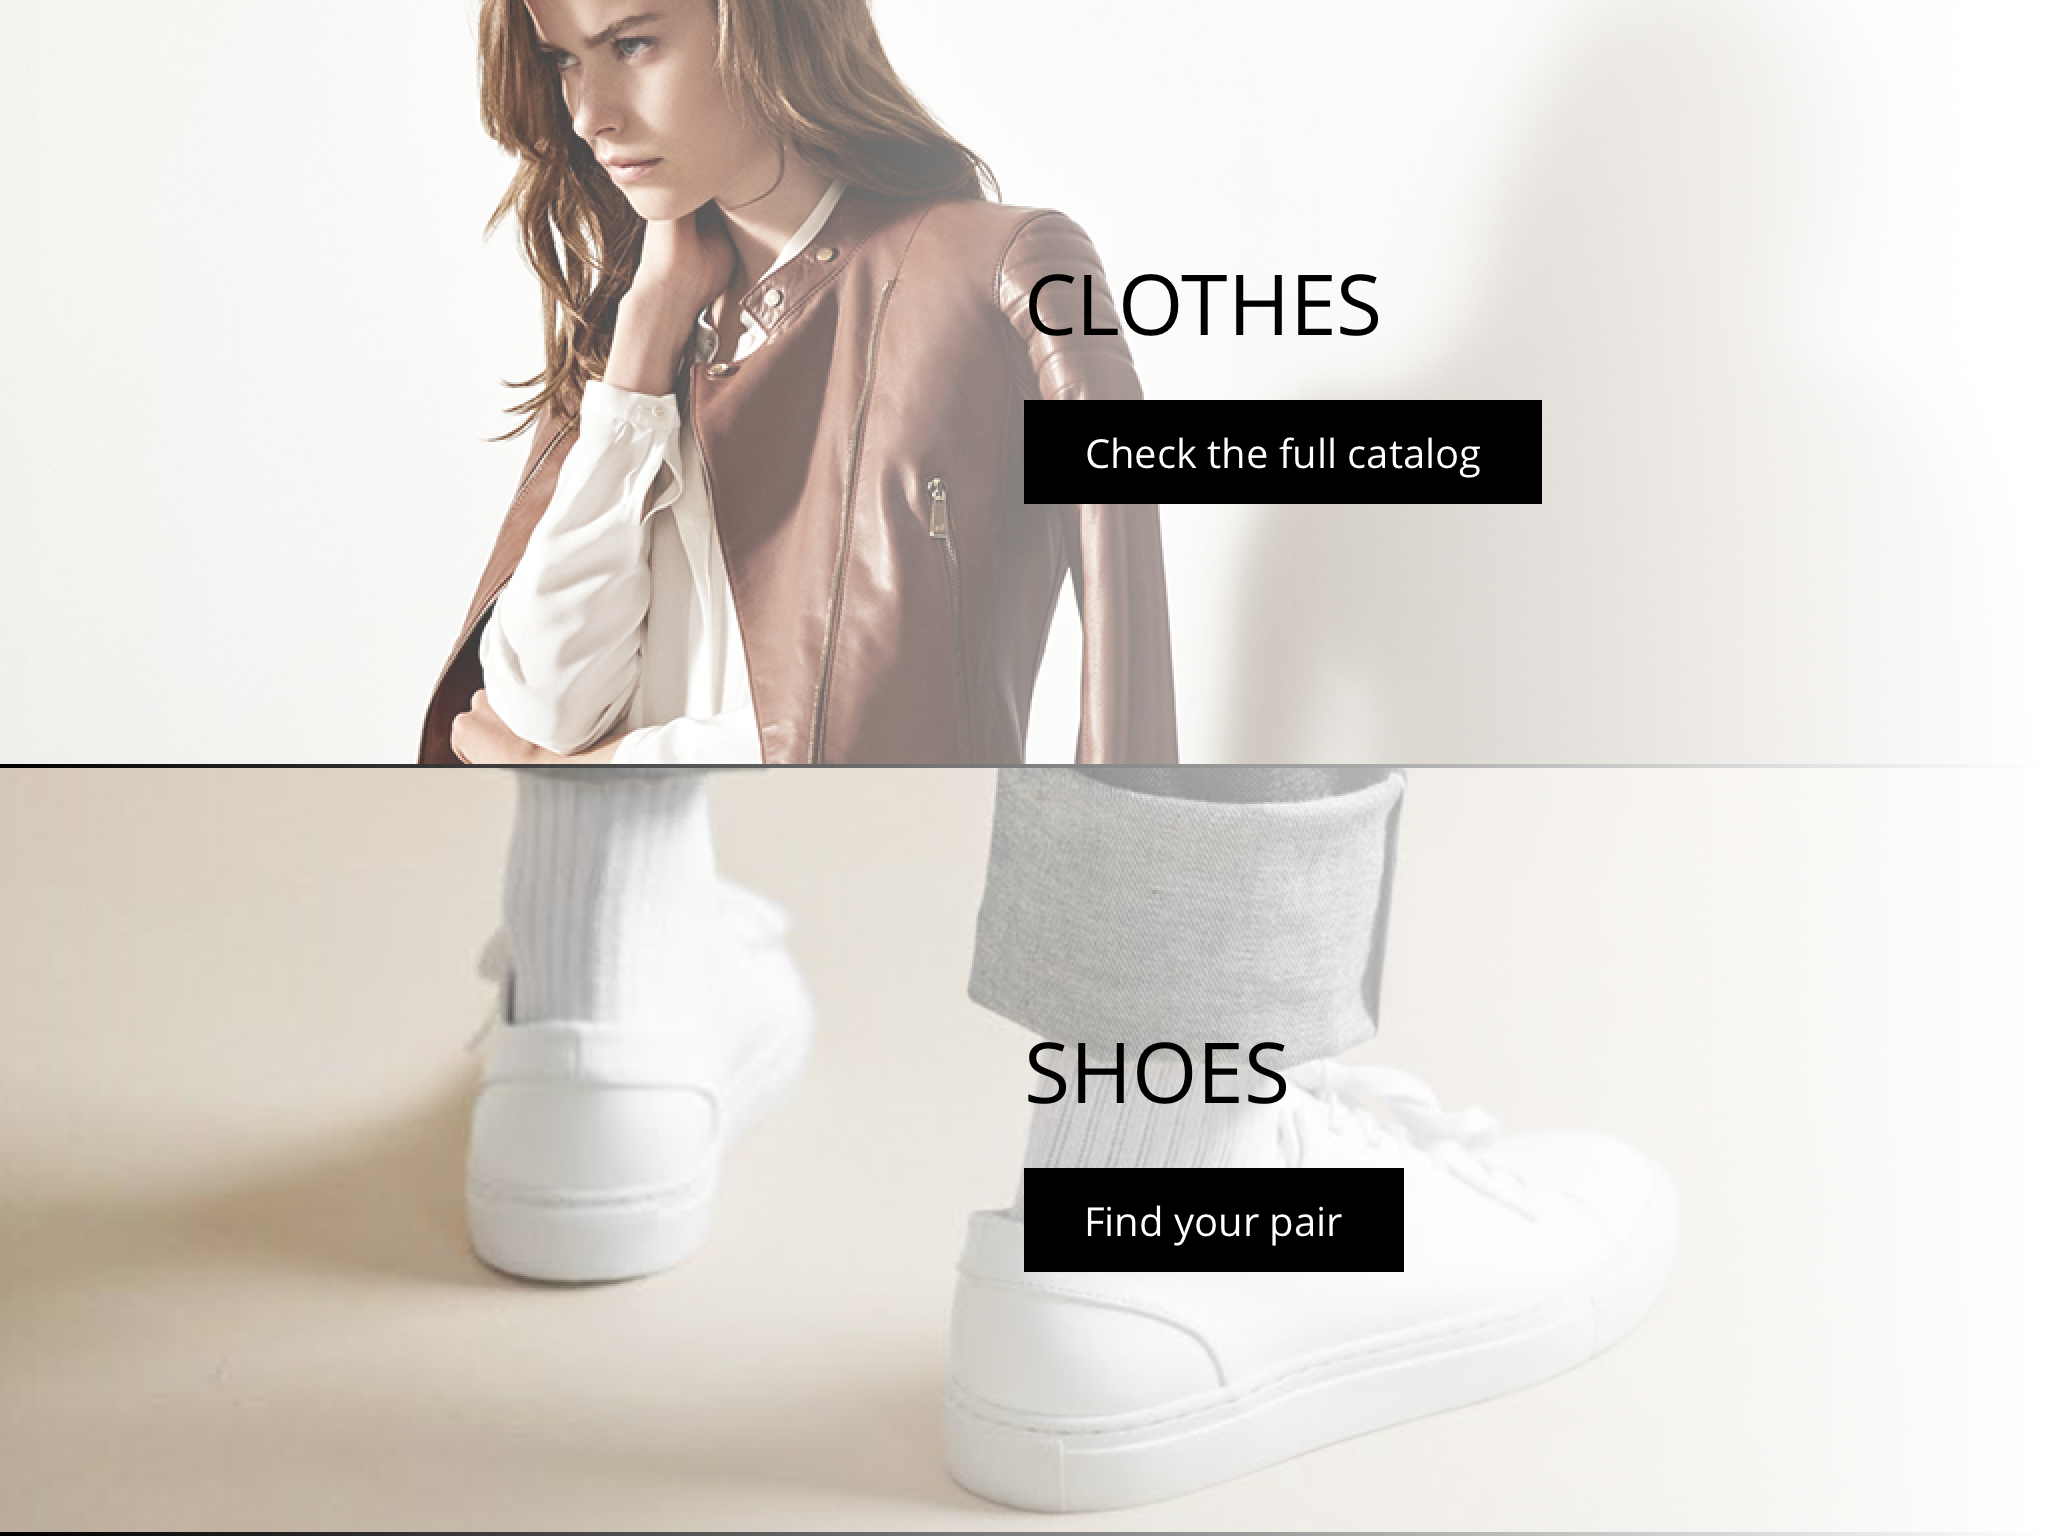 Clothes and shoes categories selection